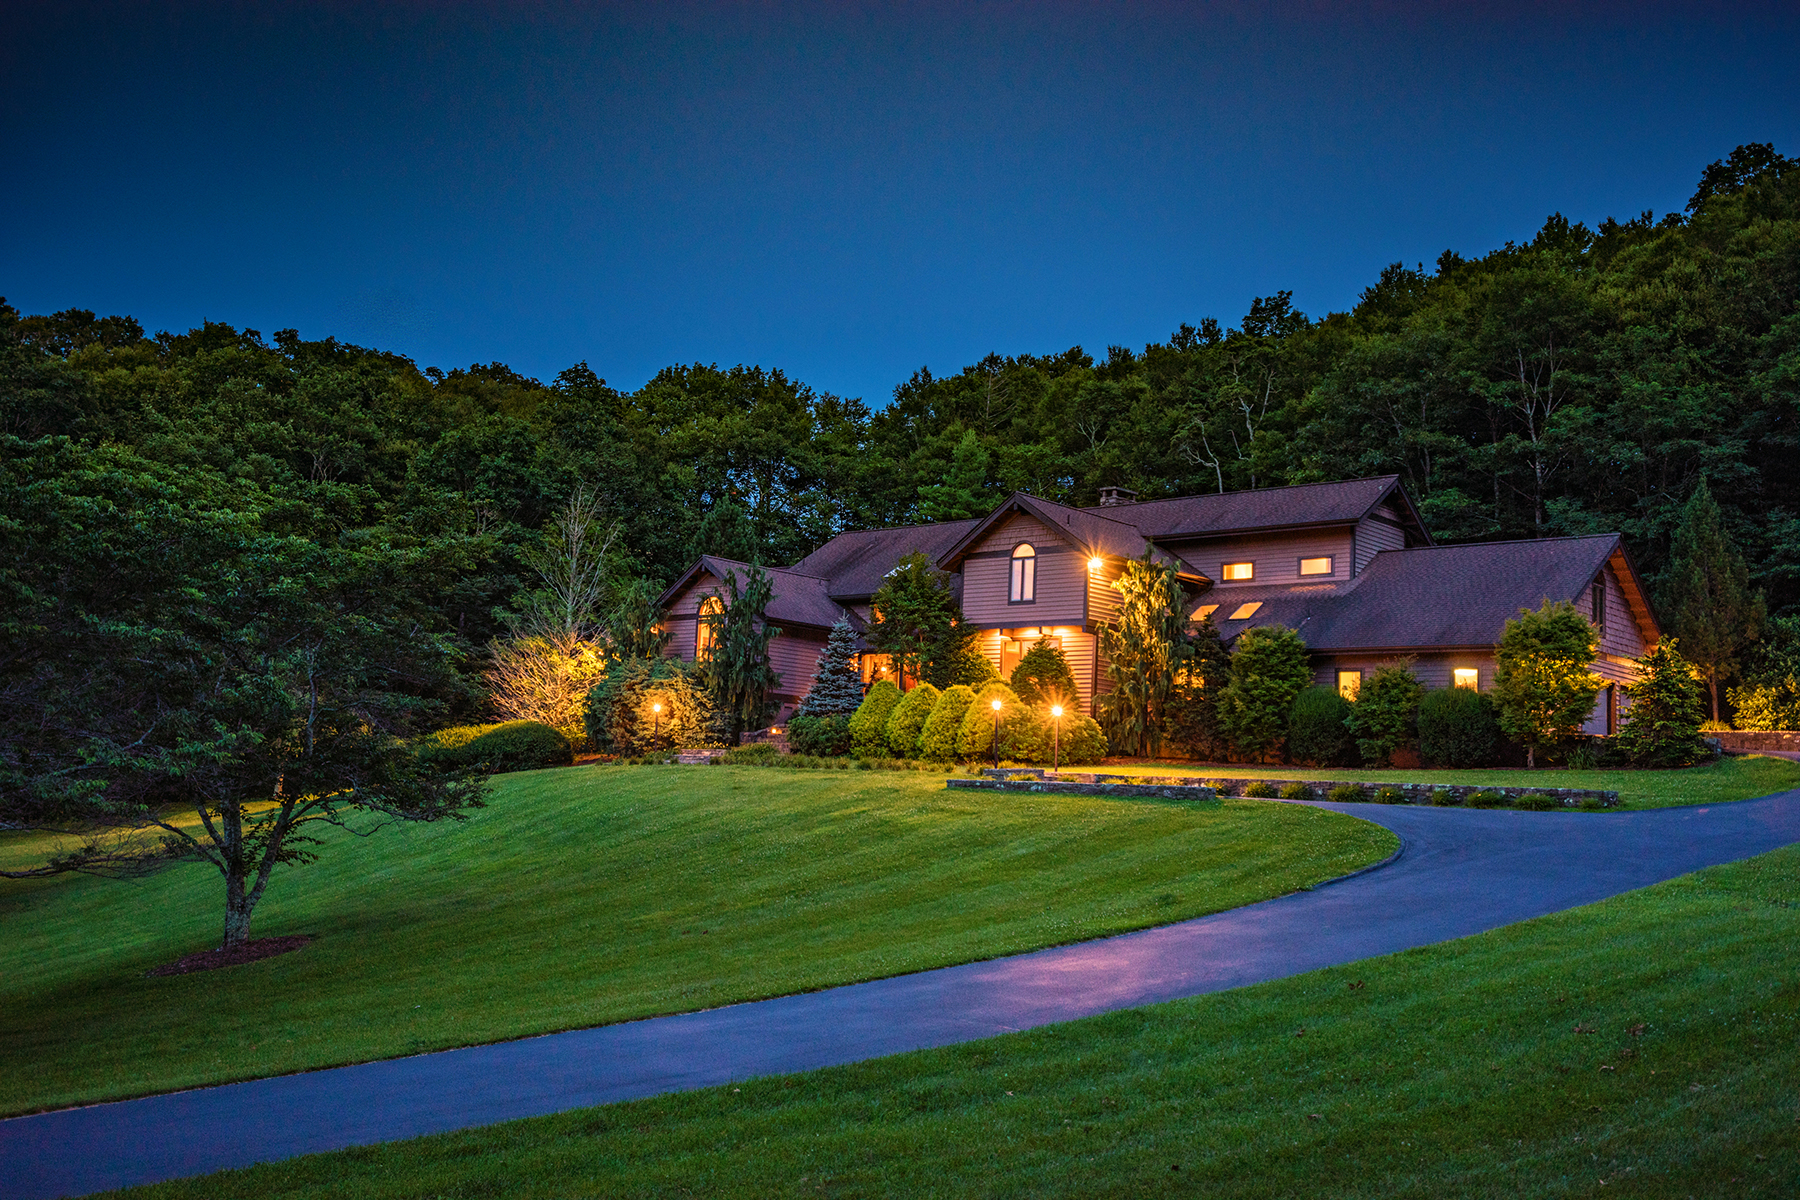 Single Family Homes for Sale at BLOWING ROCK 251 Laurel Chase Blowing Rock, North Carolina 28605 United States